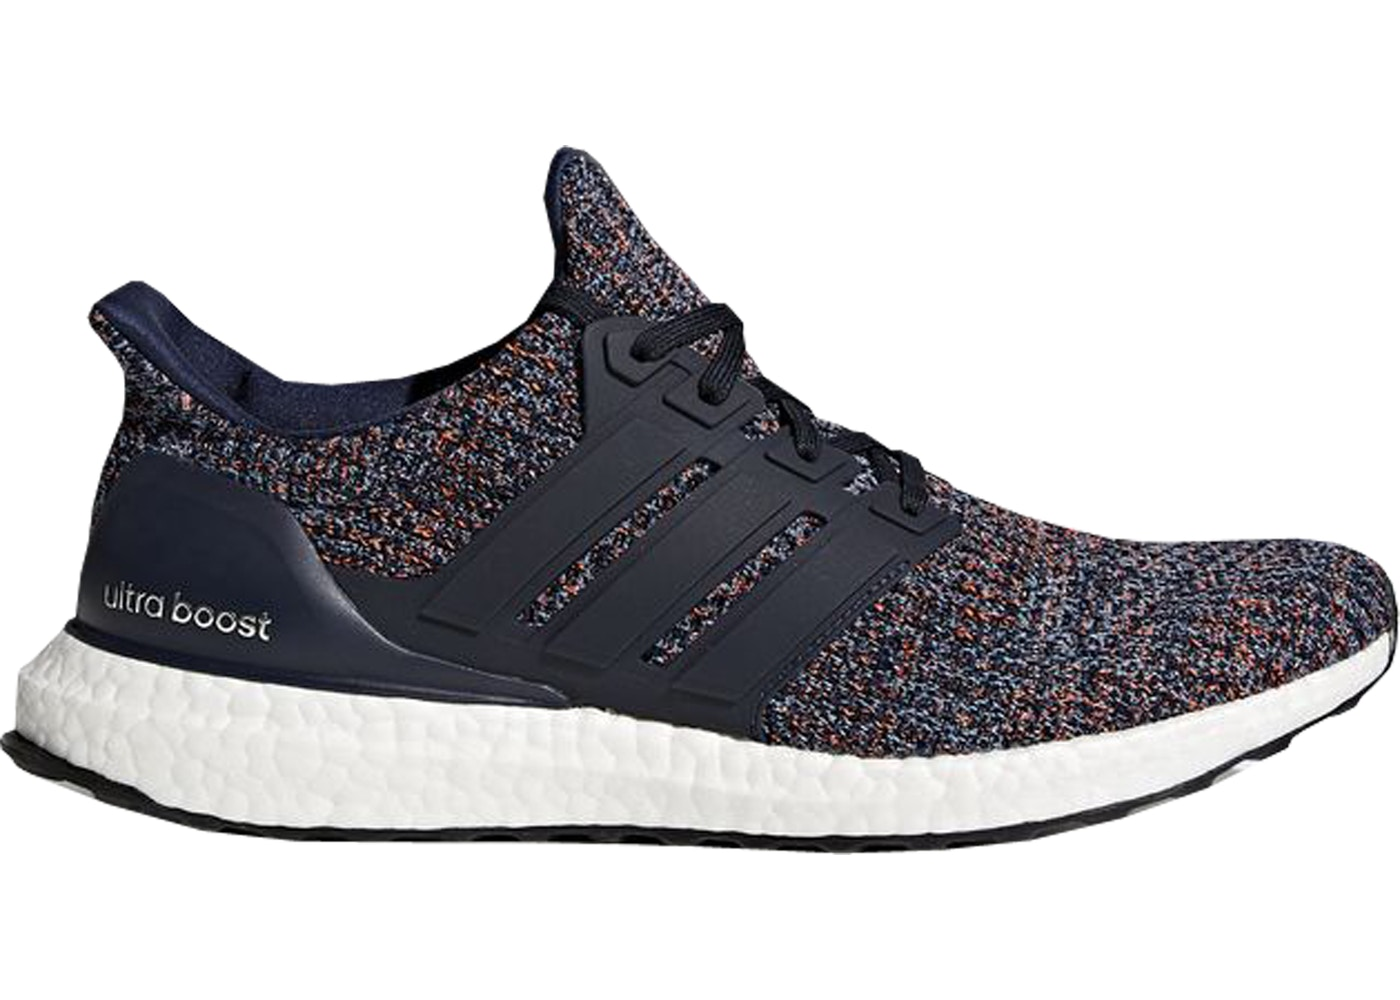 reputable site 93a82 66e11 adidas Ultra Boost 4.0 Navy Multi-Color